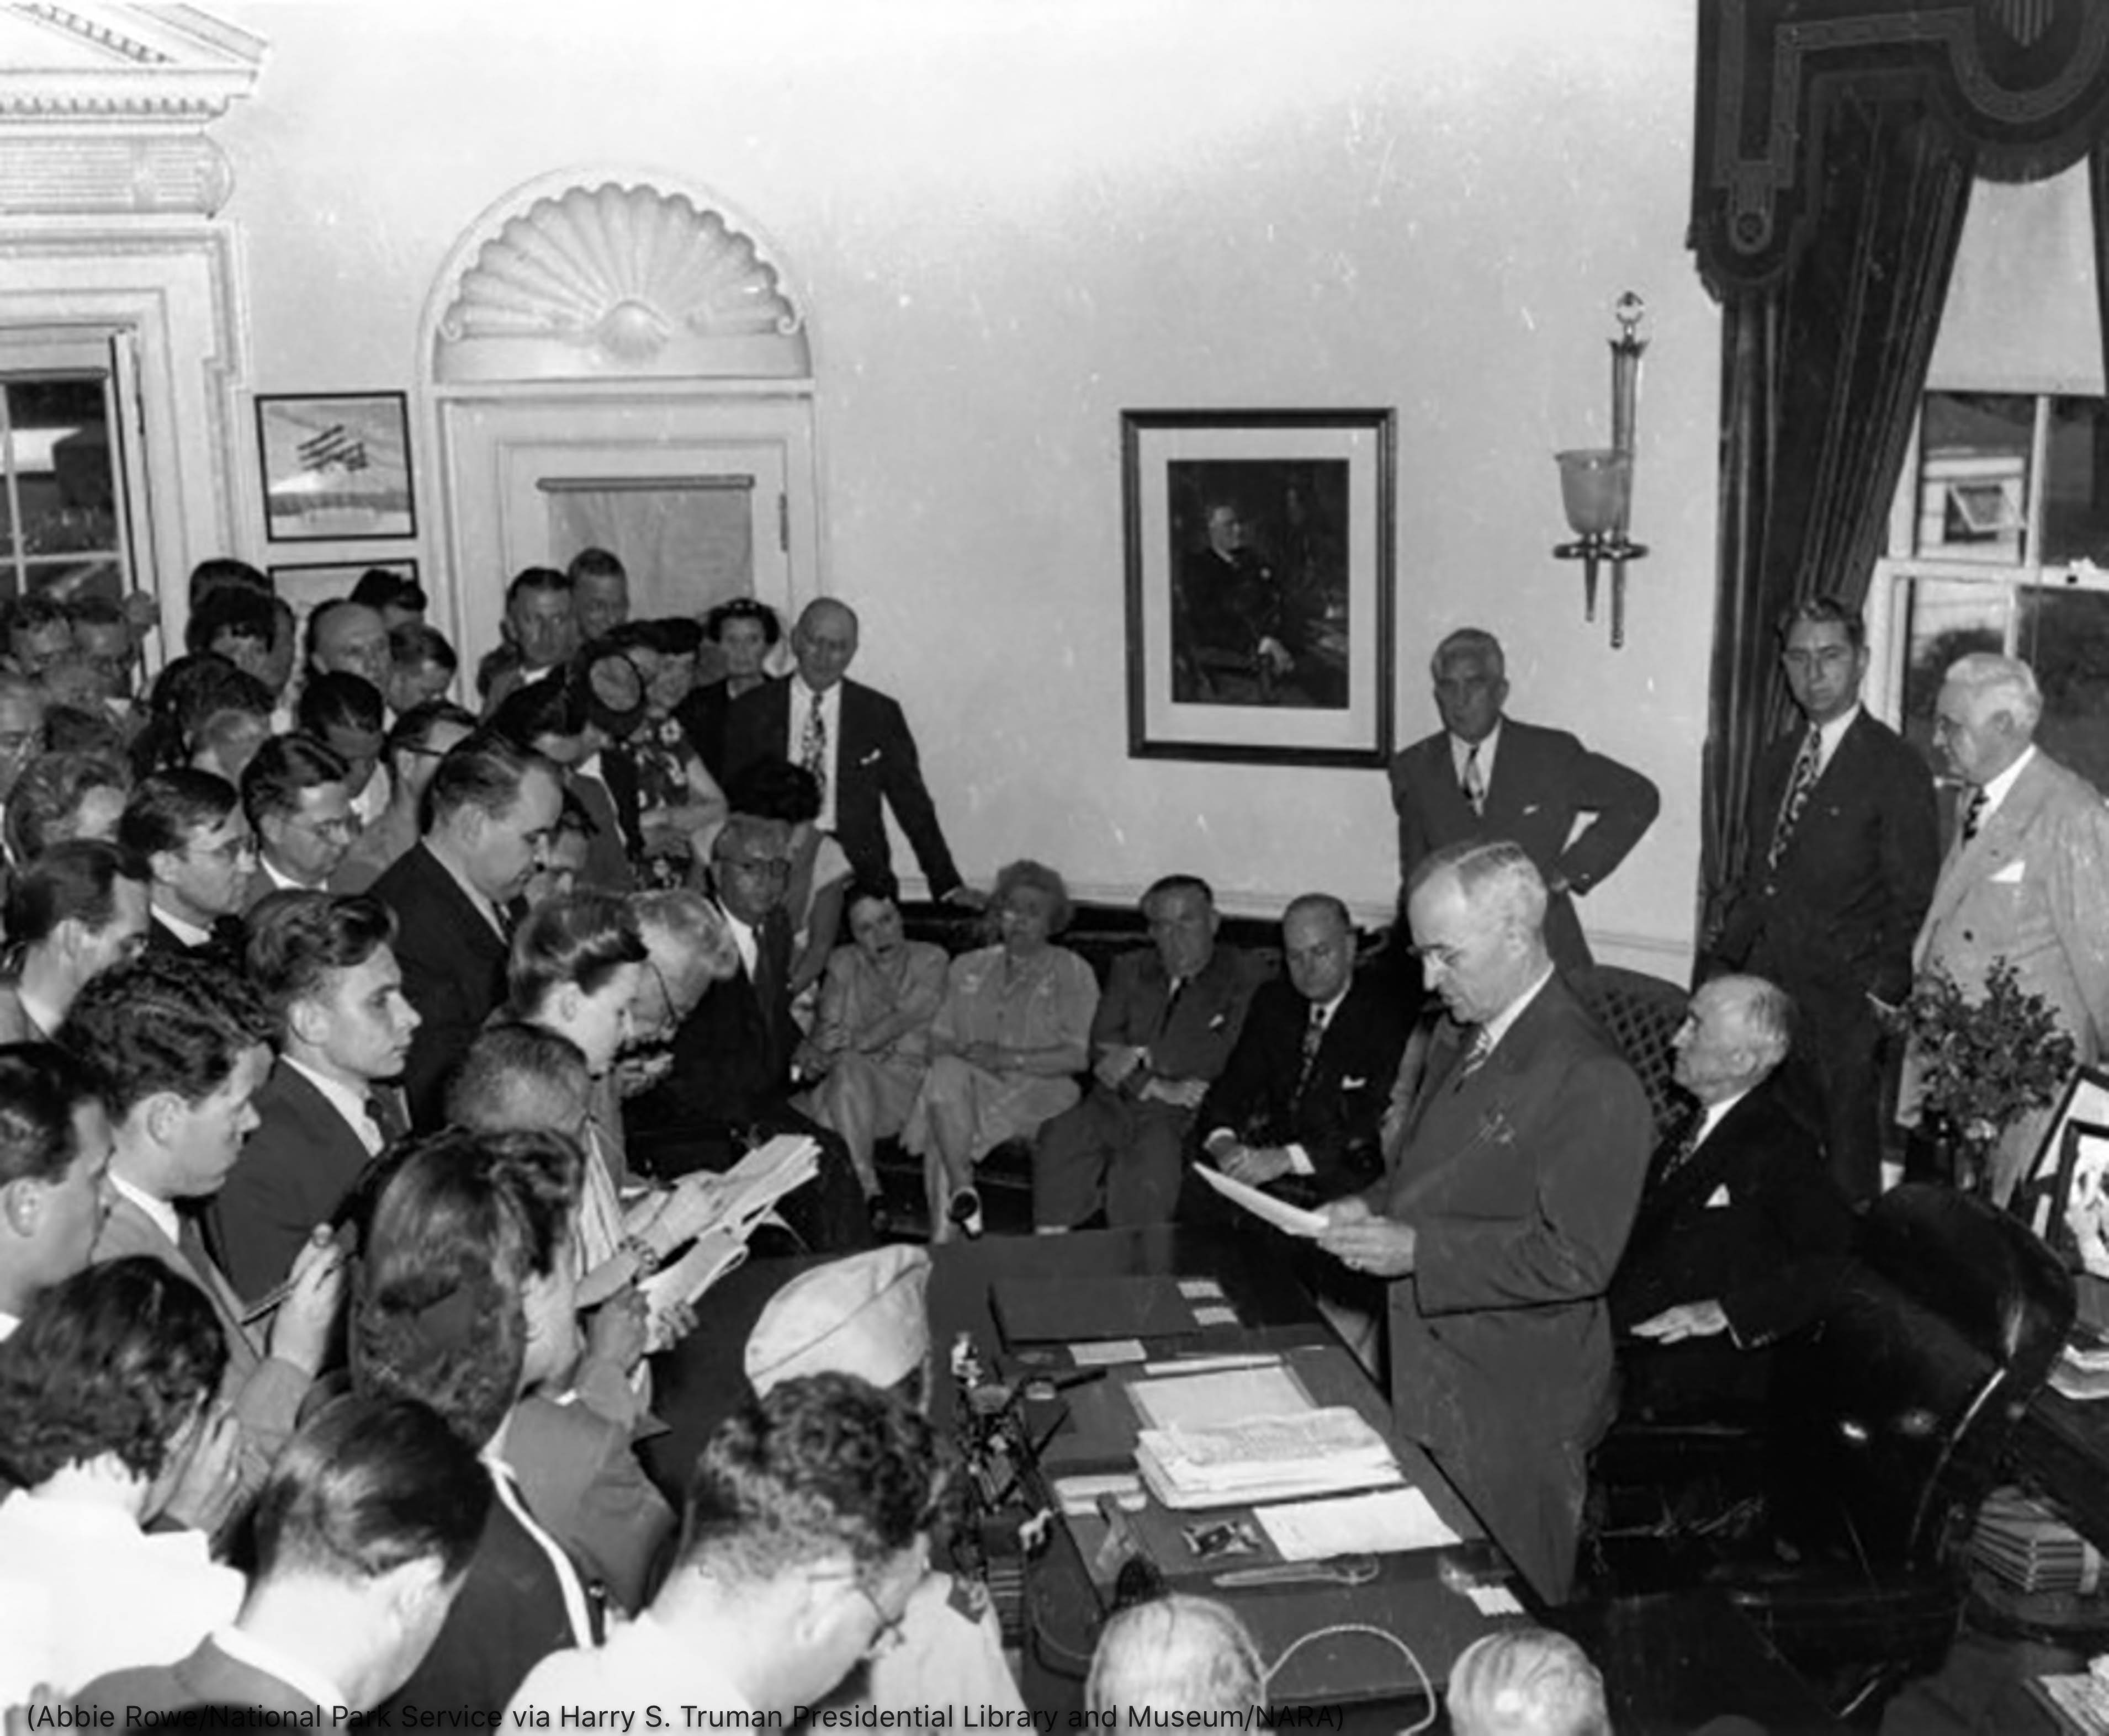 President Truman speaking to reporters while they take notes (Abbie Rowe/National Park Service via Harry S. Truman Presidential Library and Museum/NARA)